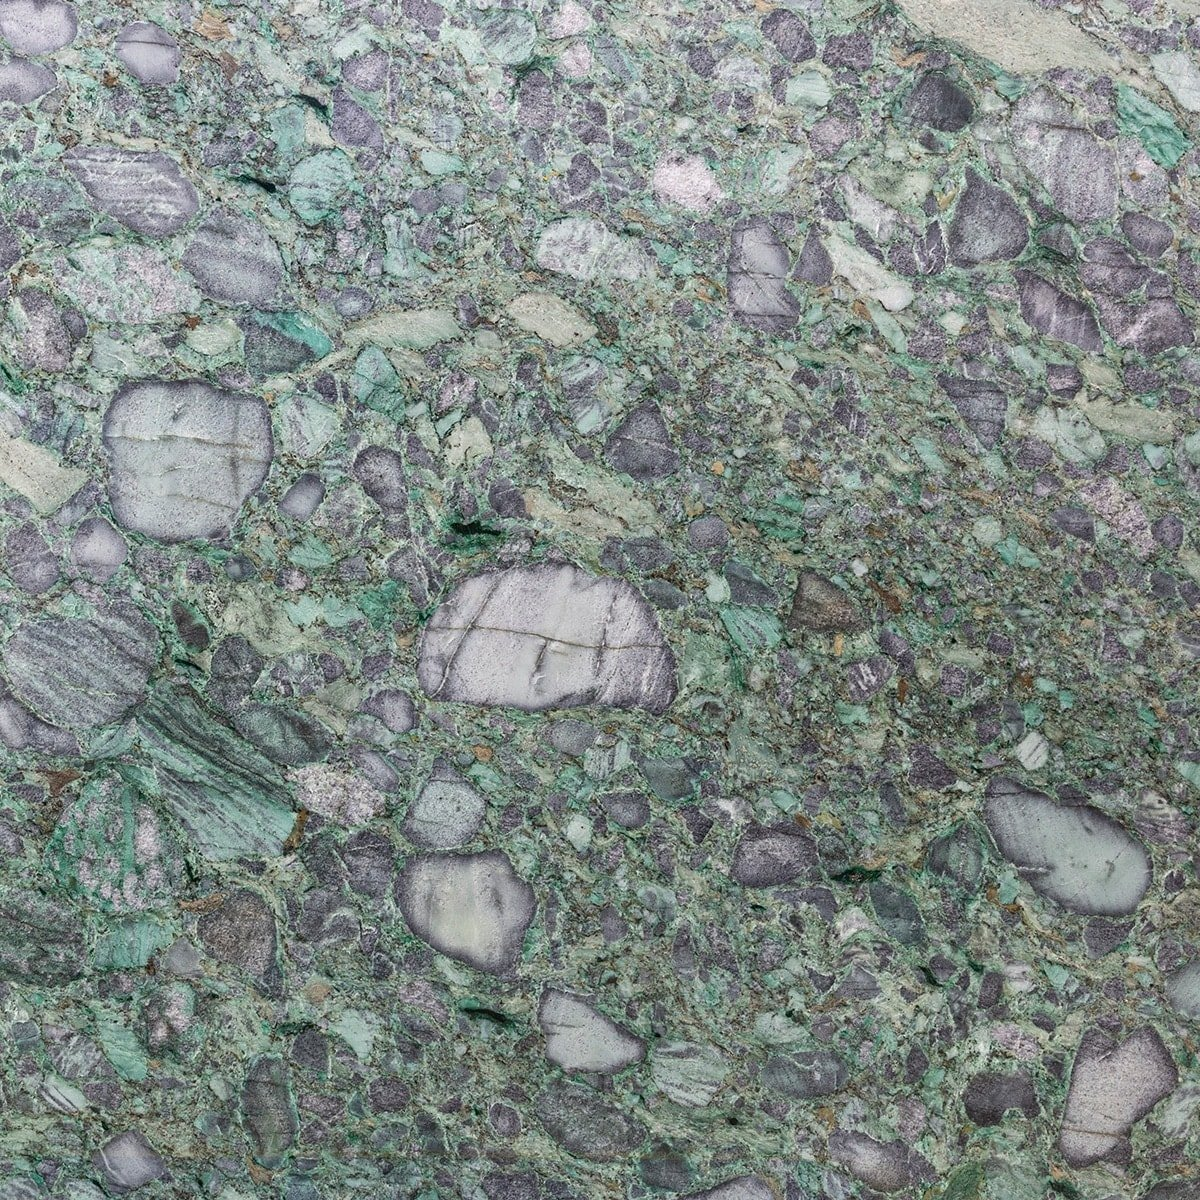 Emerald Green Polished Granite Slab Random 1 1/4